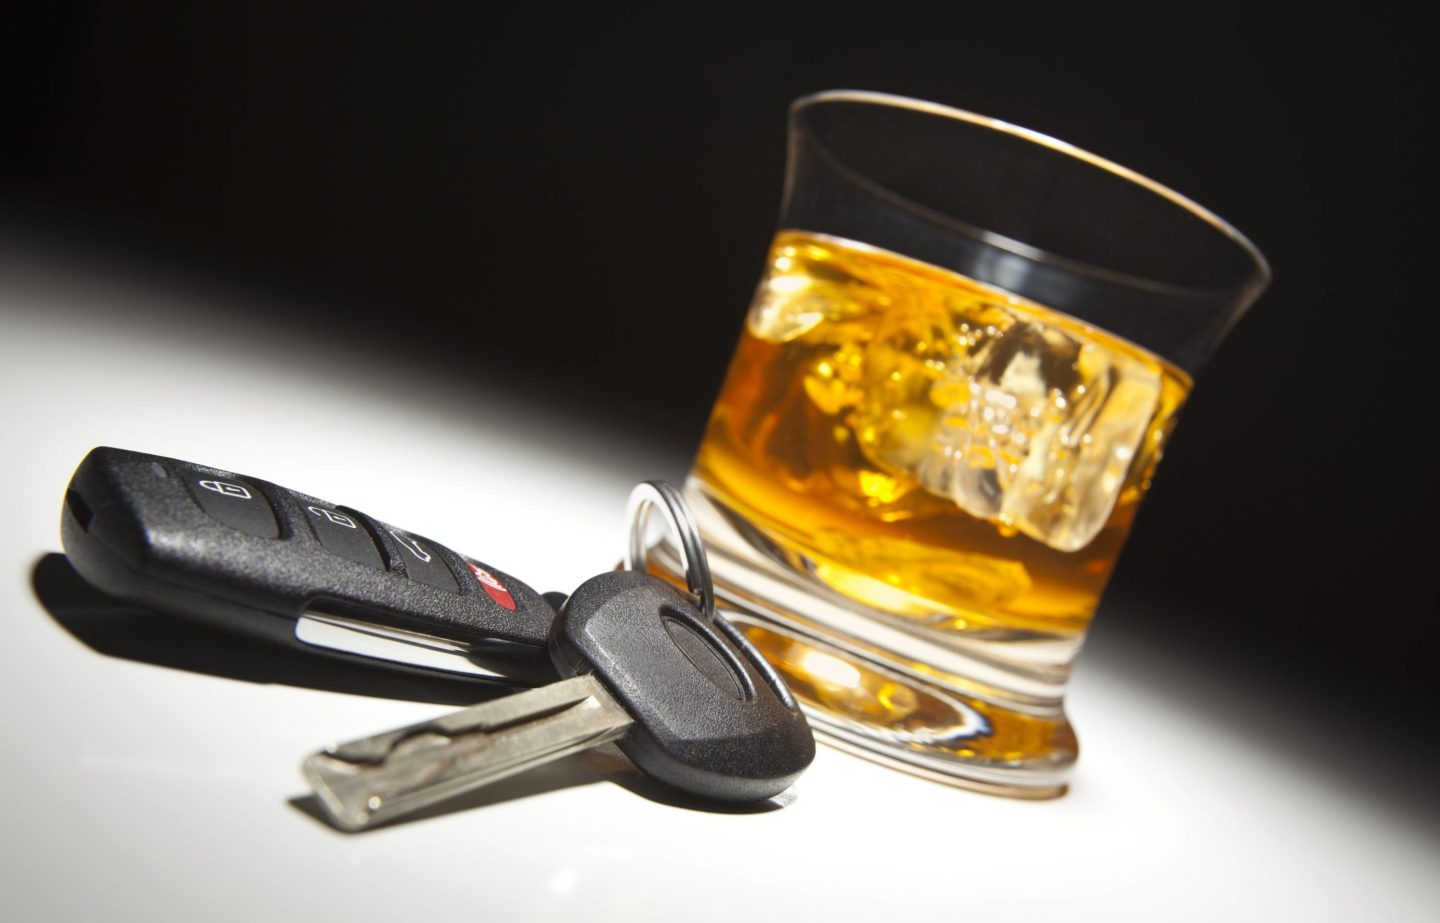 How to Avoid a DUI this Party Season